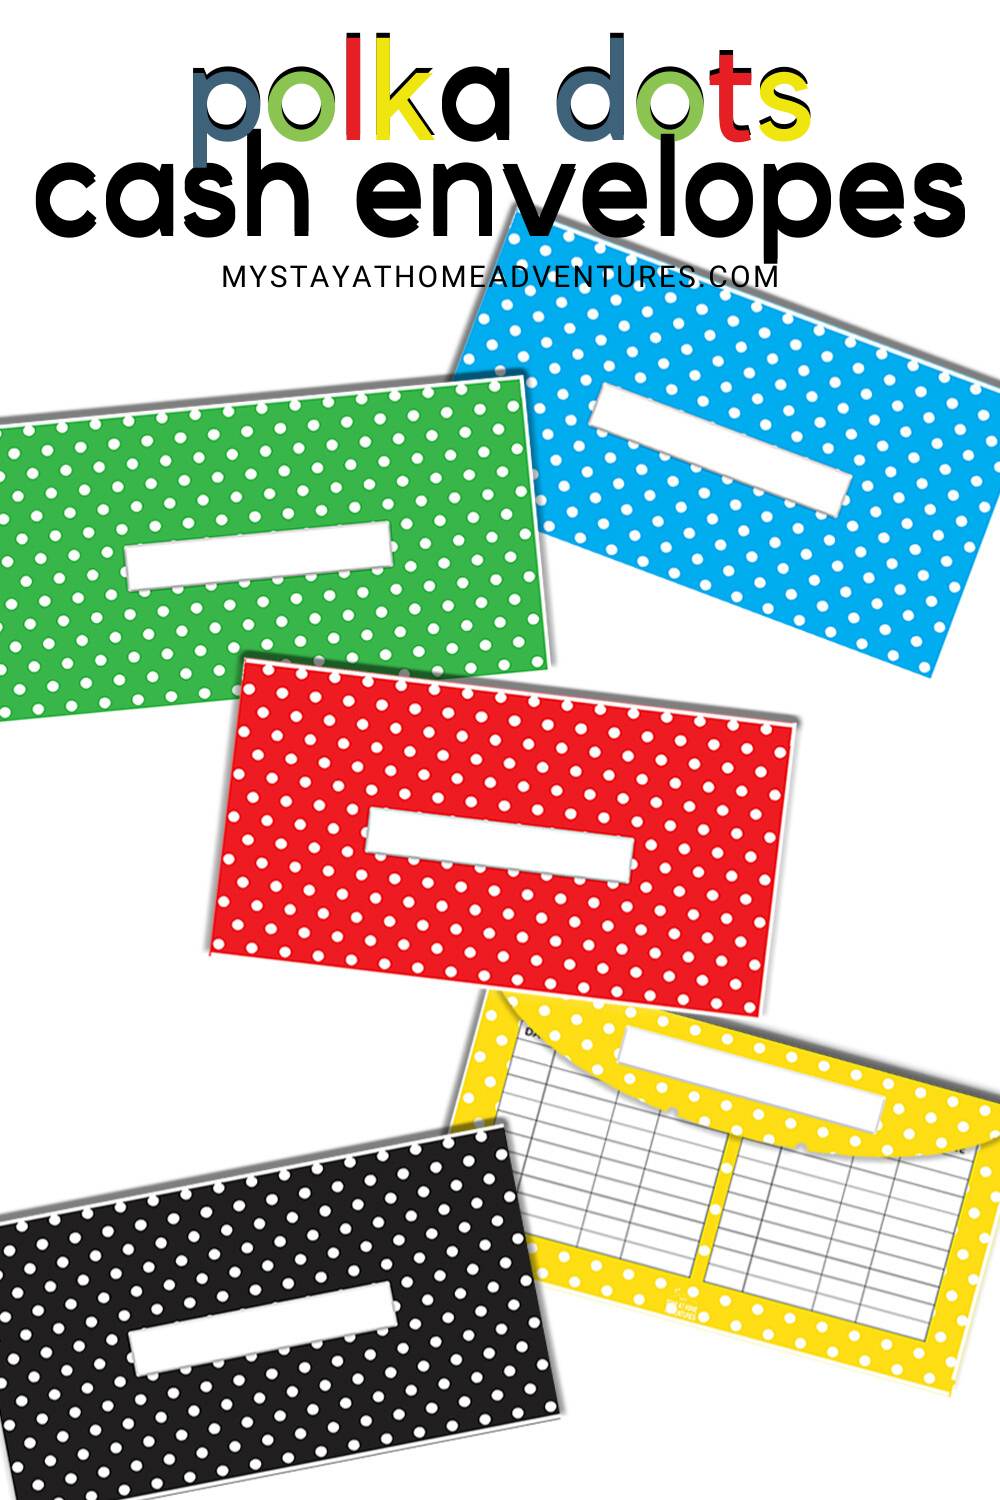 Cash budgeting doesn't have to be dull. Use these Polka Dots Cash Envelopes to keep your cash organized and easy to track. Horizontal and Vertical available. #cashbudgeting #cashenvelopetemplates #cashenvelopes #cashenvelopeprintables via @mystayathome